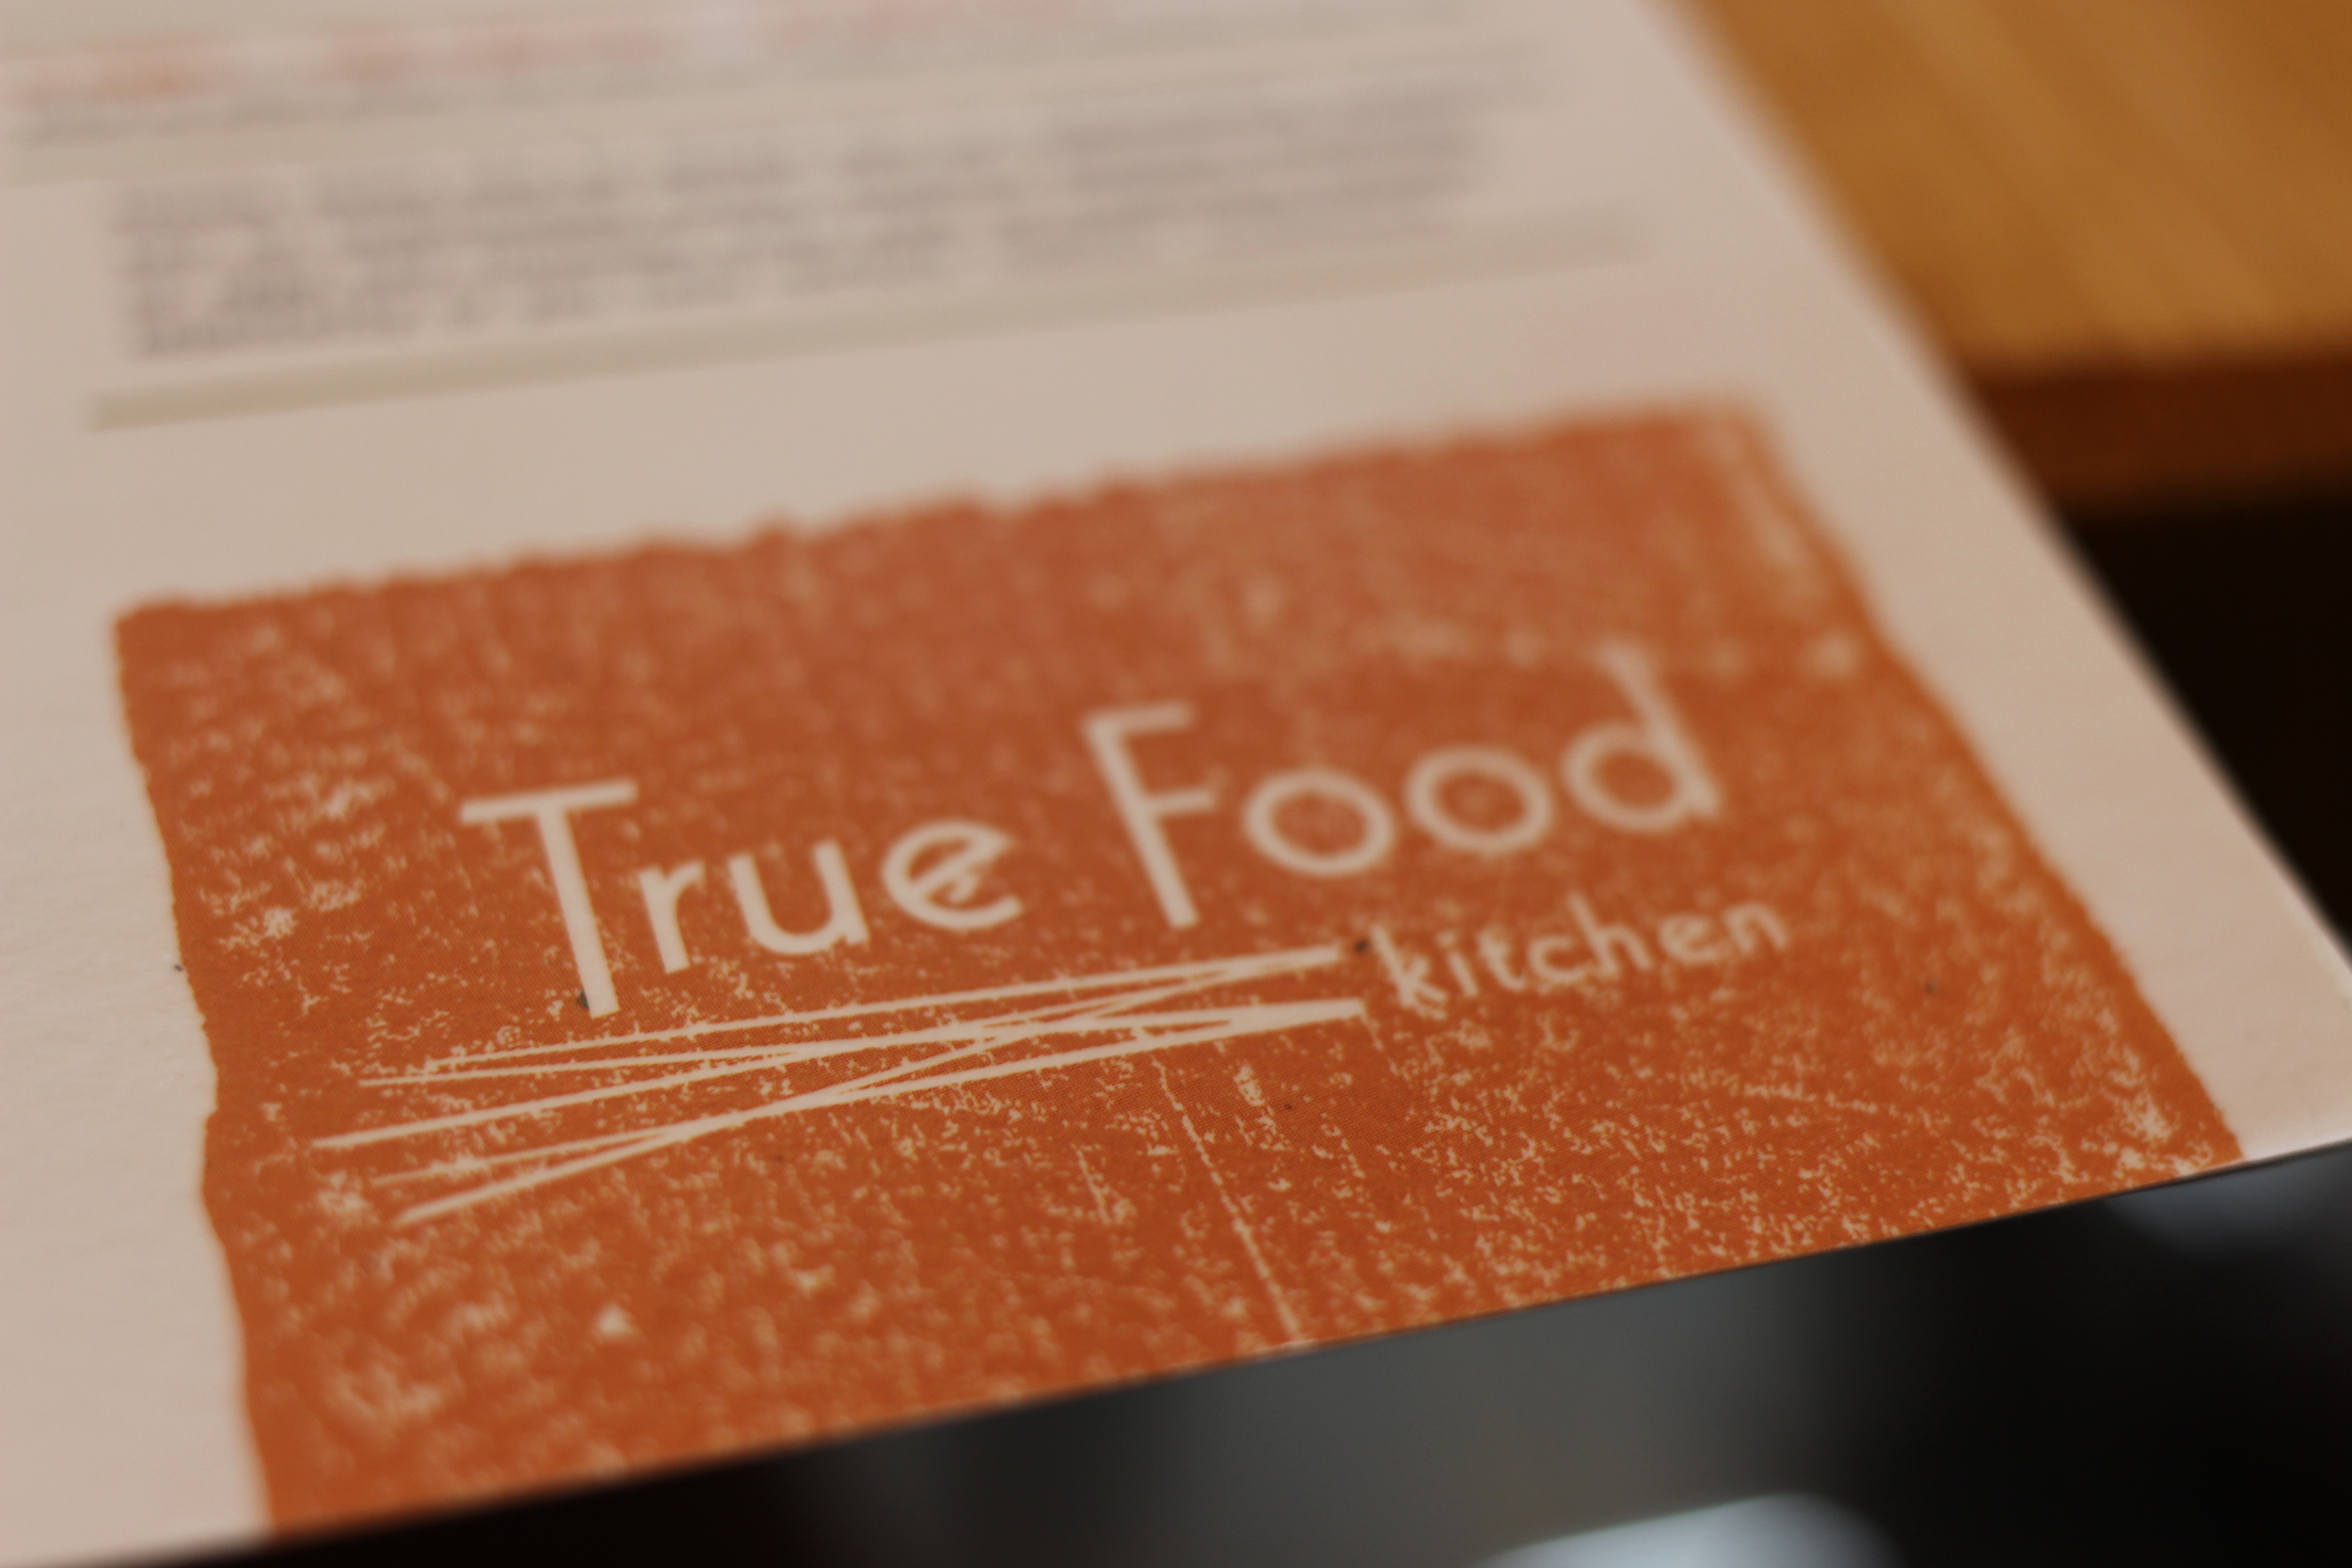 True Food Kitchen.JPG